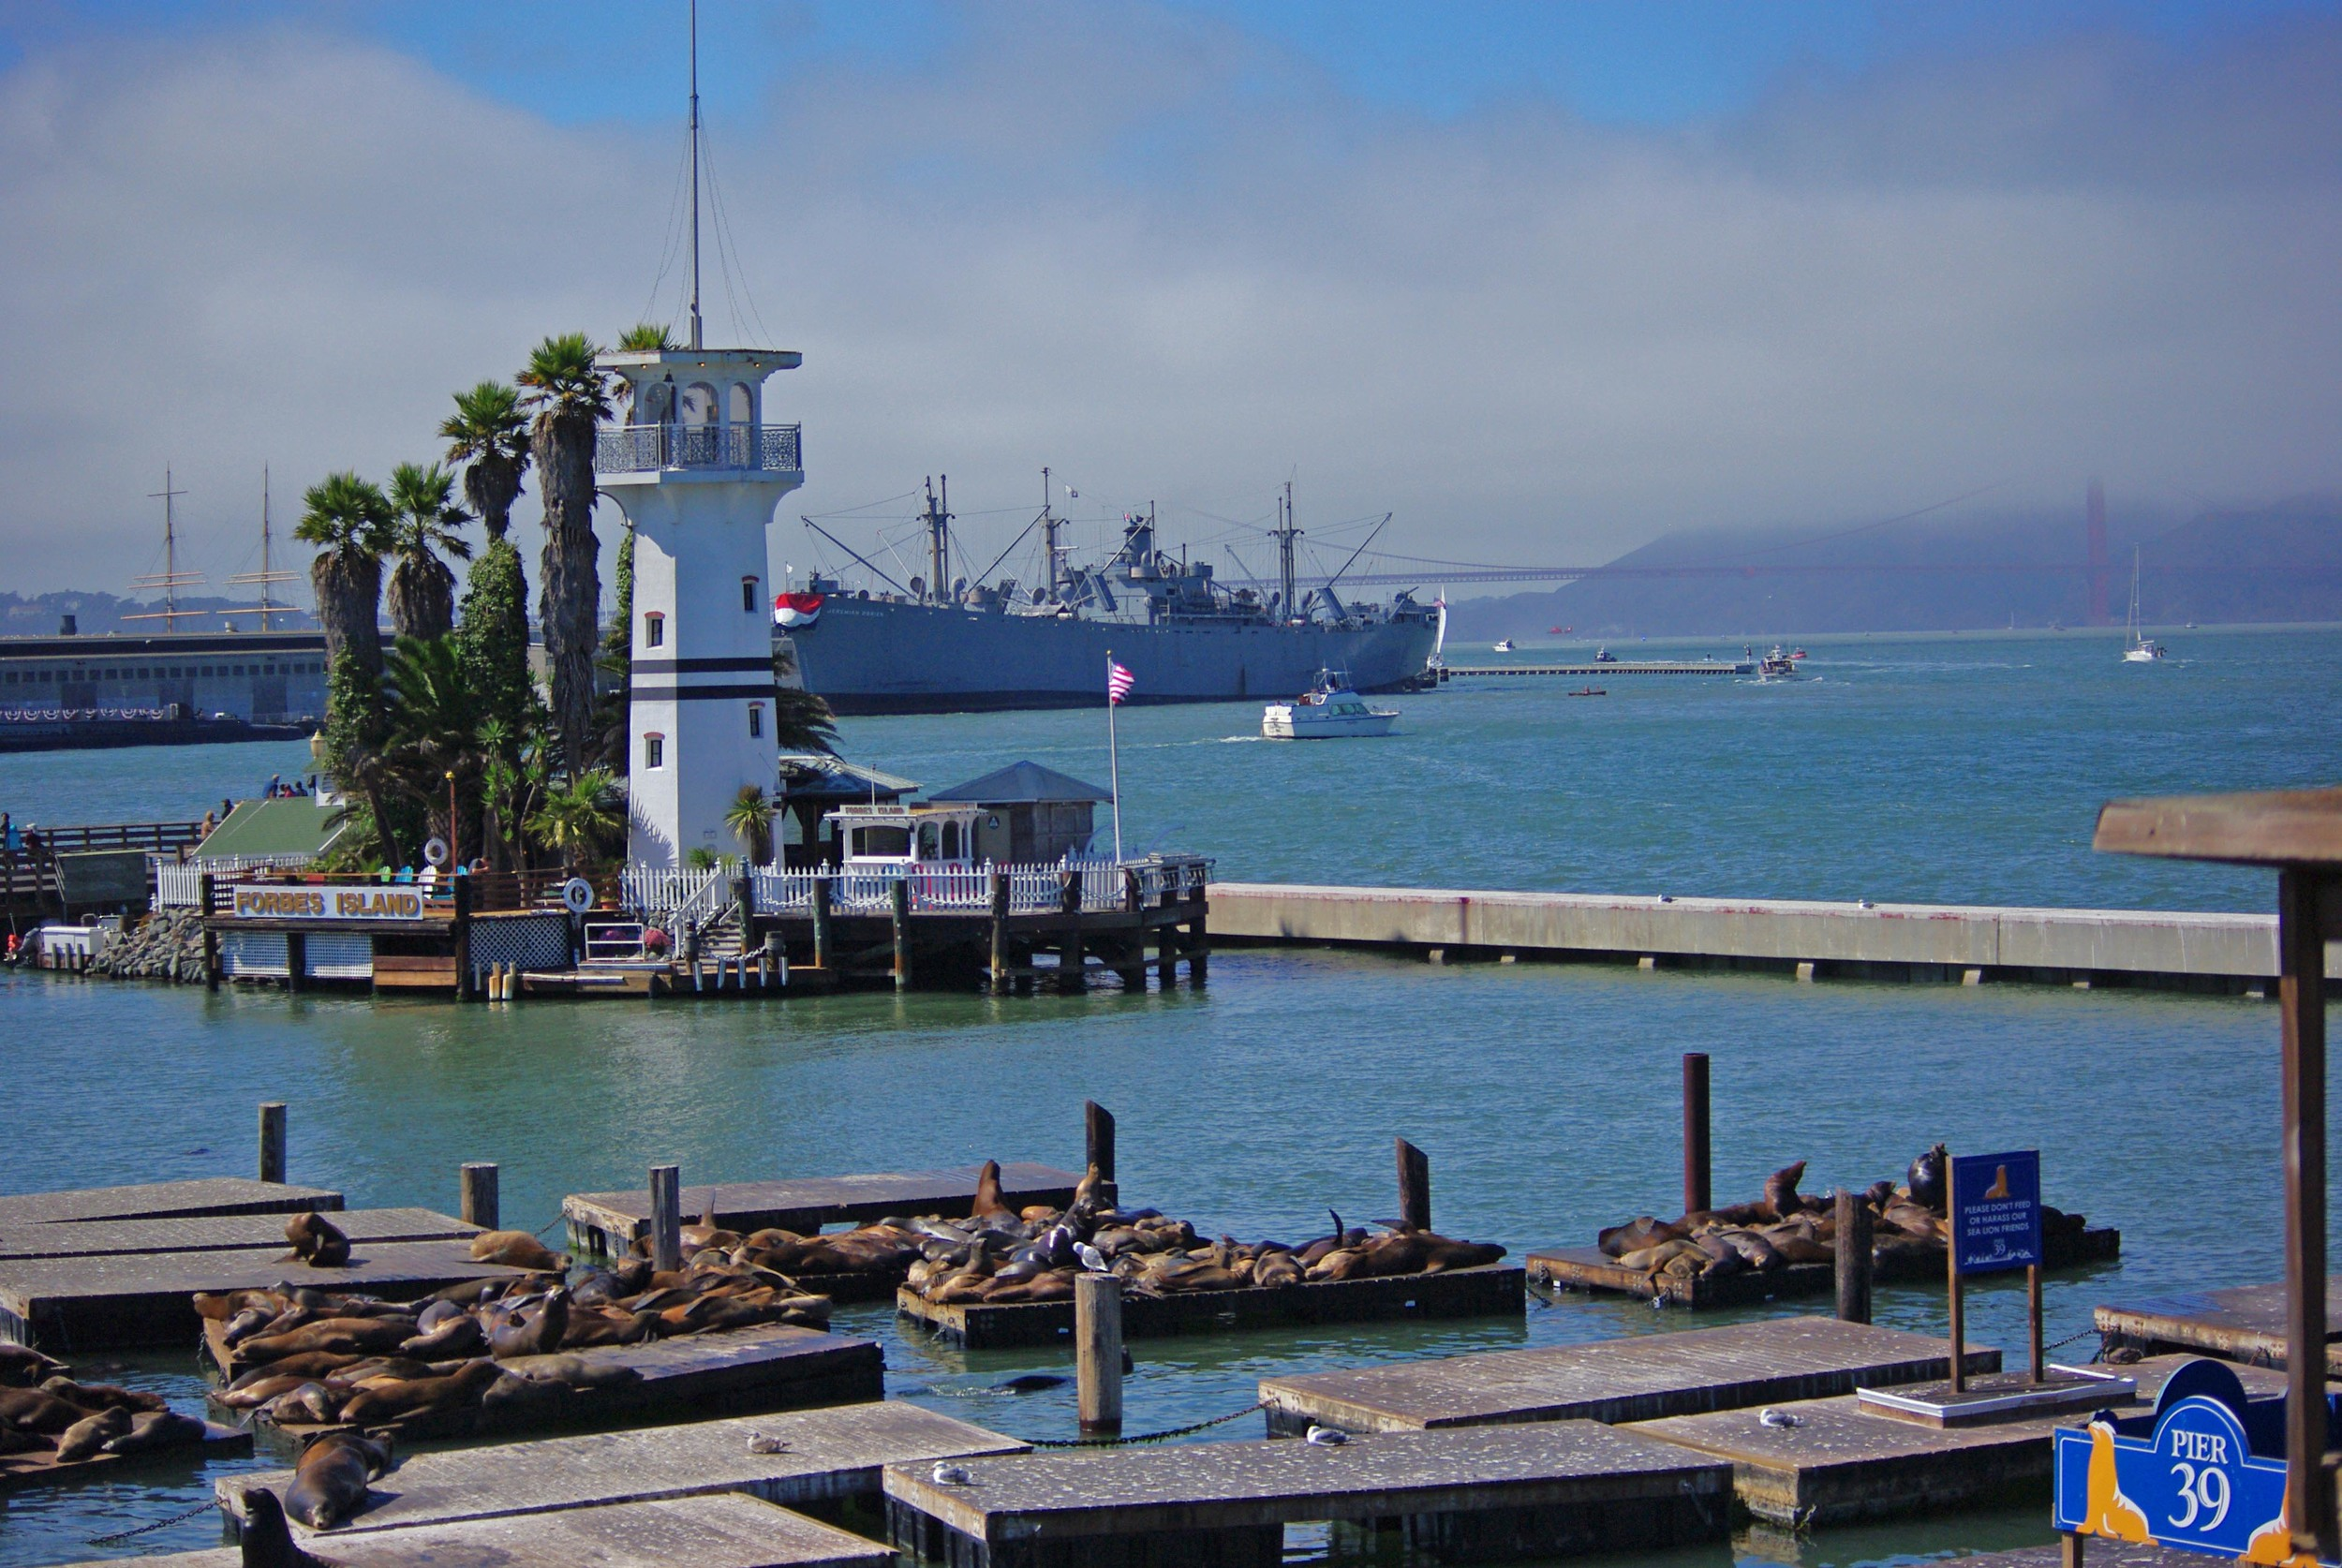 3.See the Sea lions at Pier 39